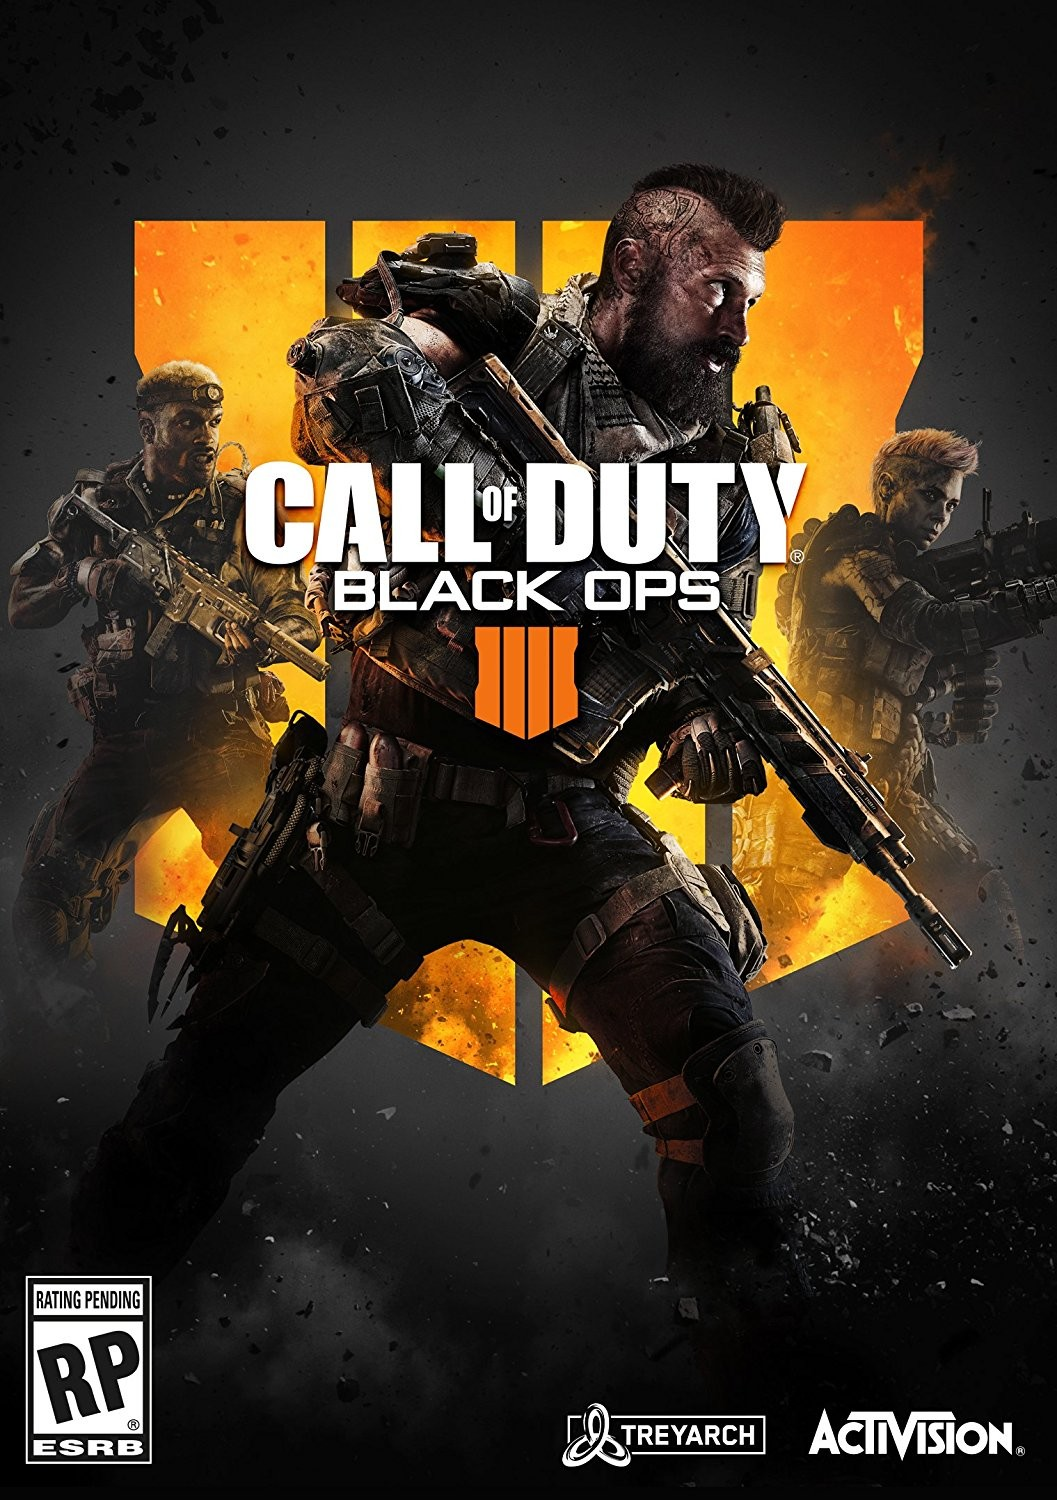 Call of Duty: Black Ops IIII 使命召唤:黑色行动4